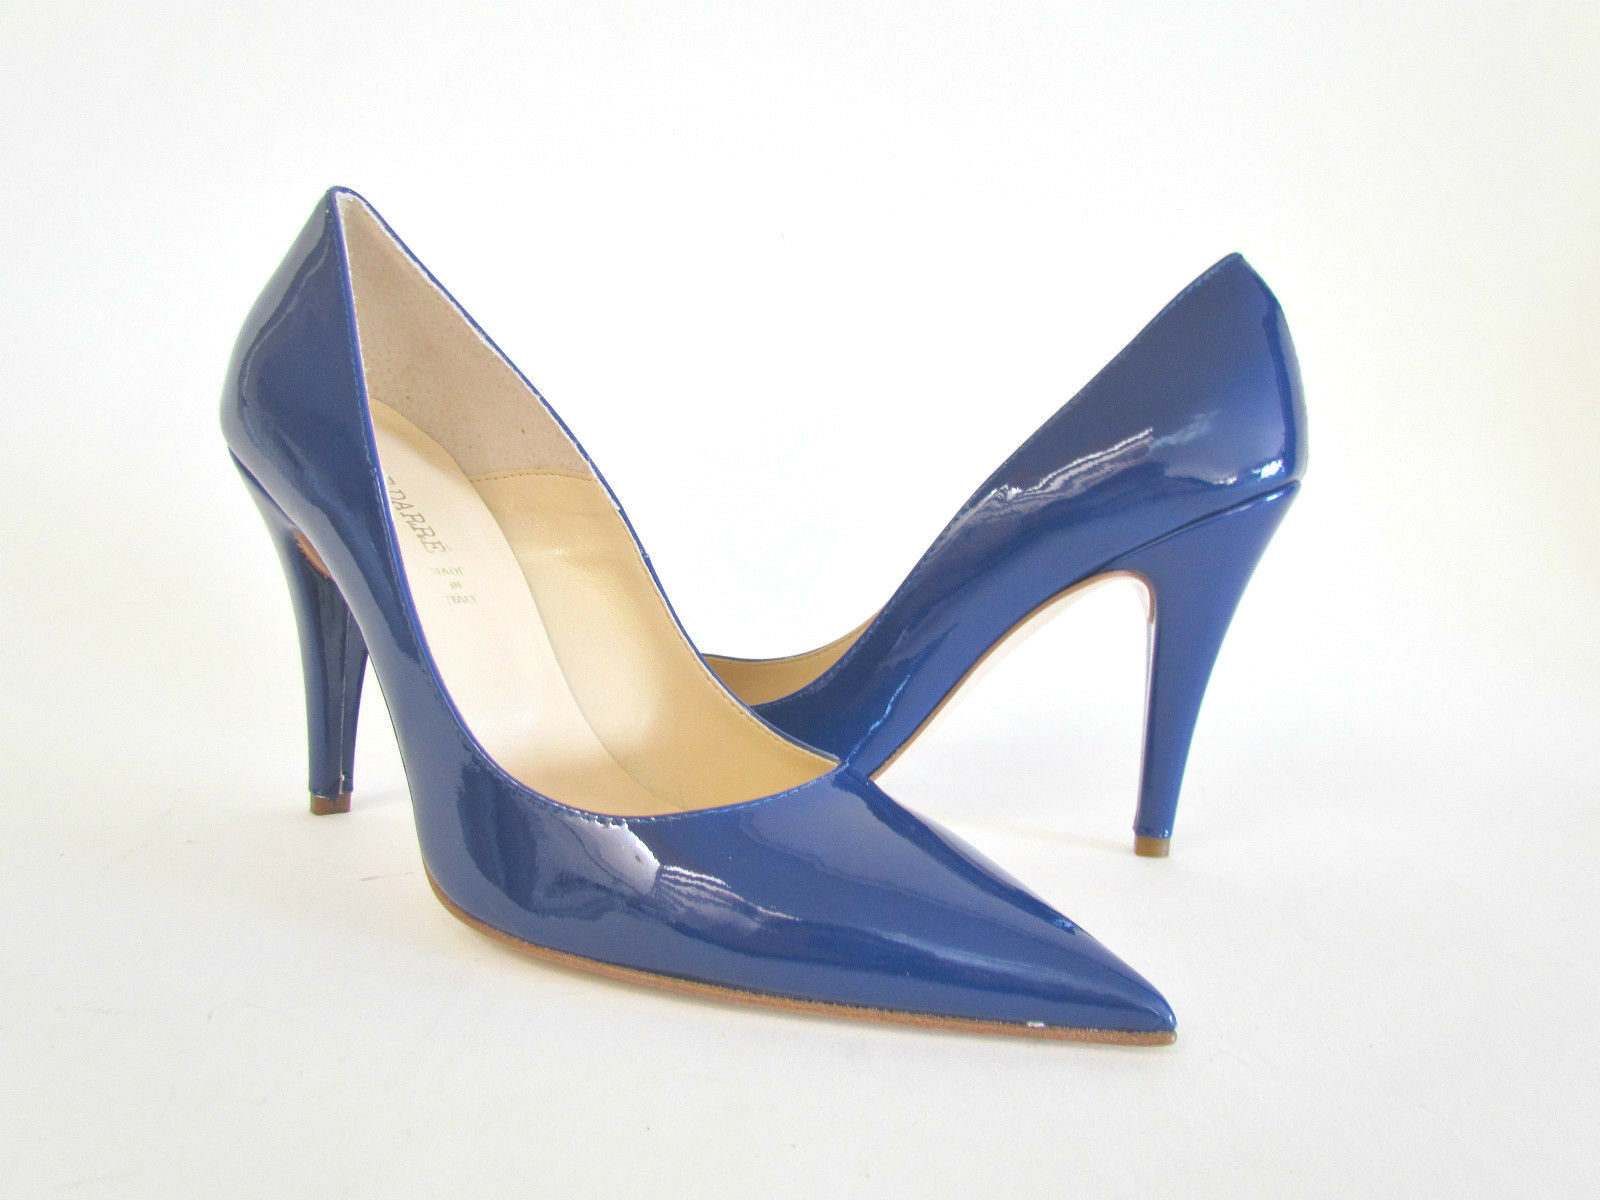 outlet in vendita NEW PIERRE DARRE' COBALT blu POINTY TOE PATENT PATENT PATENT LEATHER HIGH HEEL scarpe 39 - 9 M  in cerca di agente di vendita